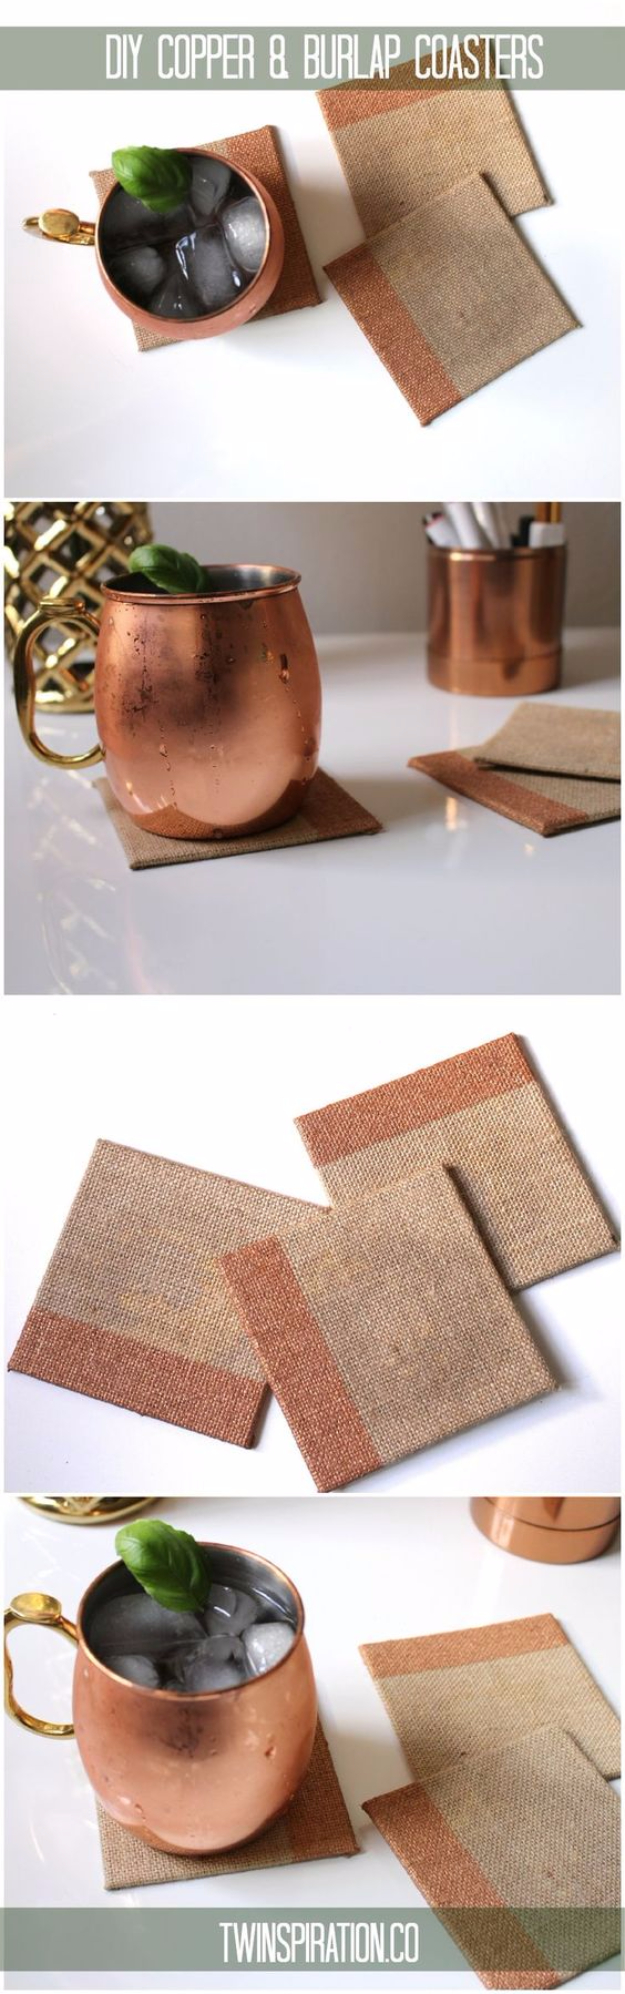 DIY Coasters - DIY Copper And Burlap Coasters - Best Quick DIY Gifts and Home Decor - Easy Step by Step Tutorials for DIY Coaster Projects - Mod Podge, Tile, Painted, Photo and Sewing Projects - Cool Christmas Presents for Him and Her - DIY Projects and Crafts by DIY Joy